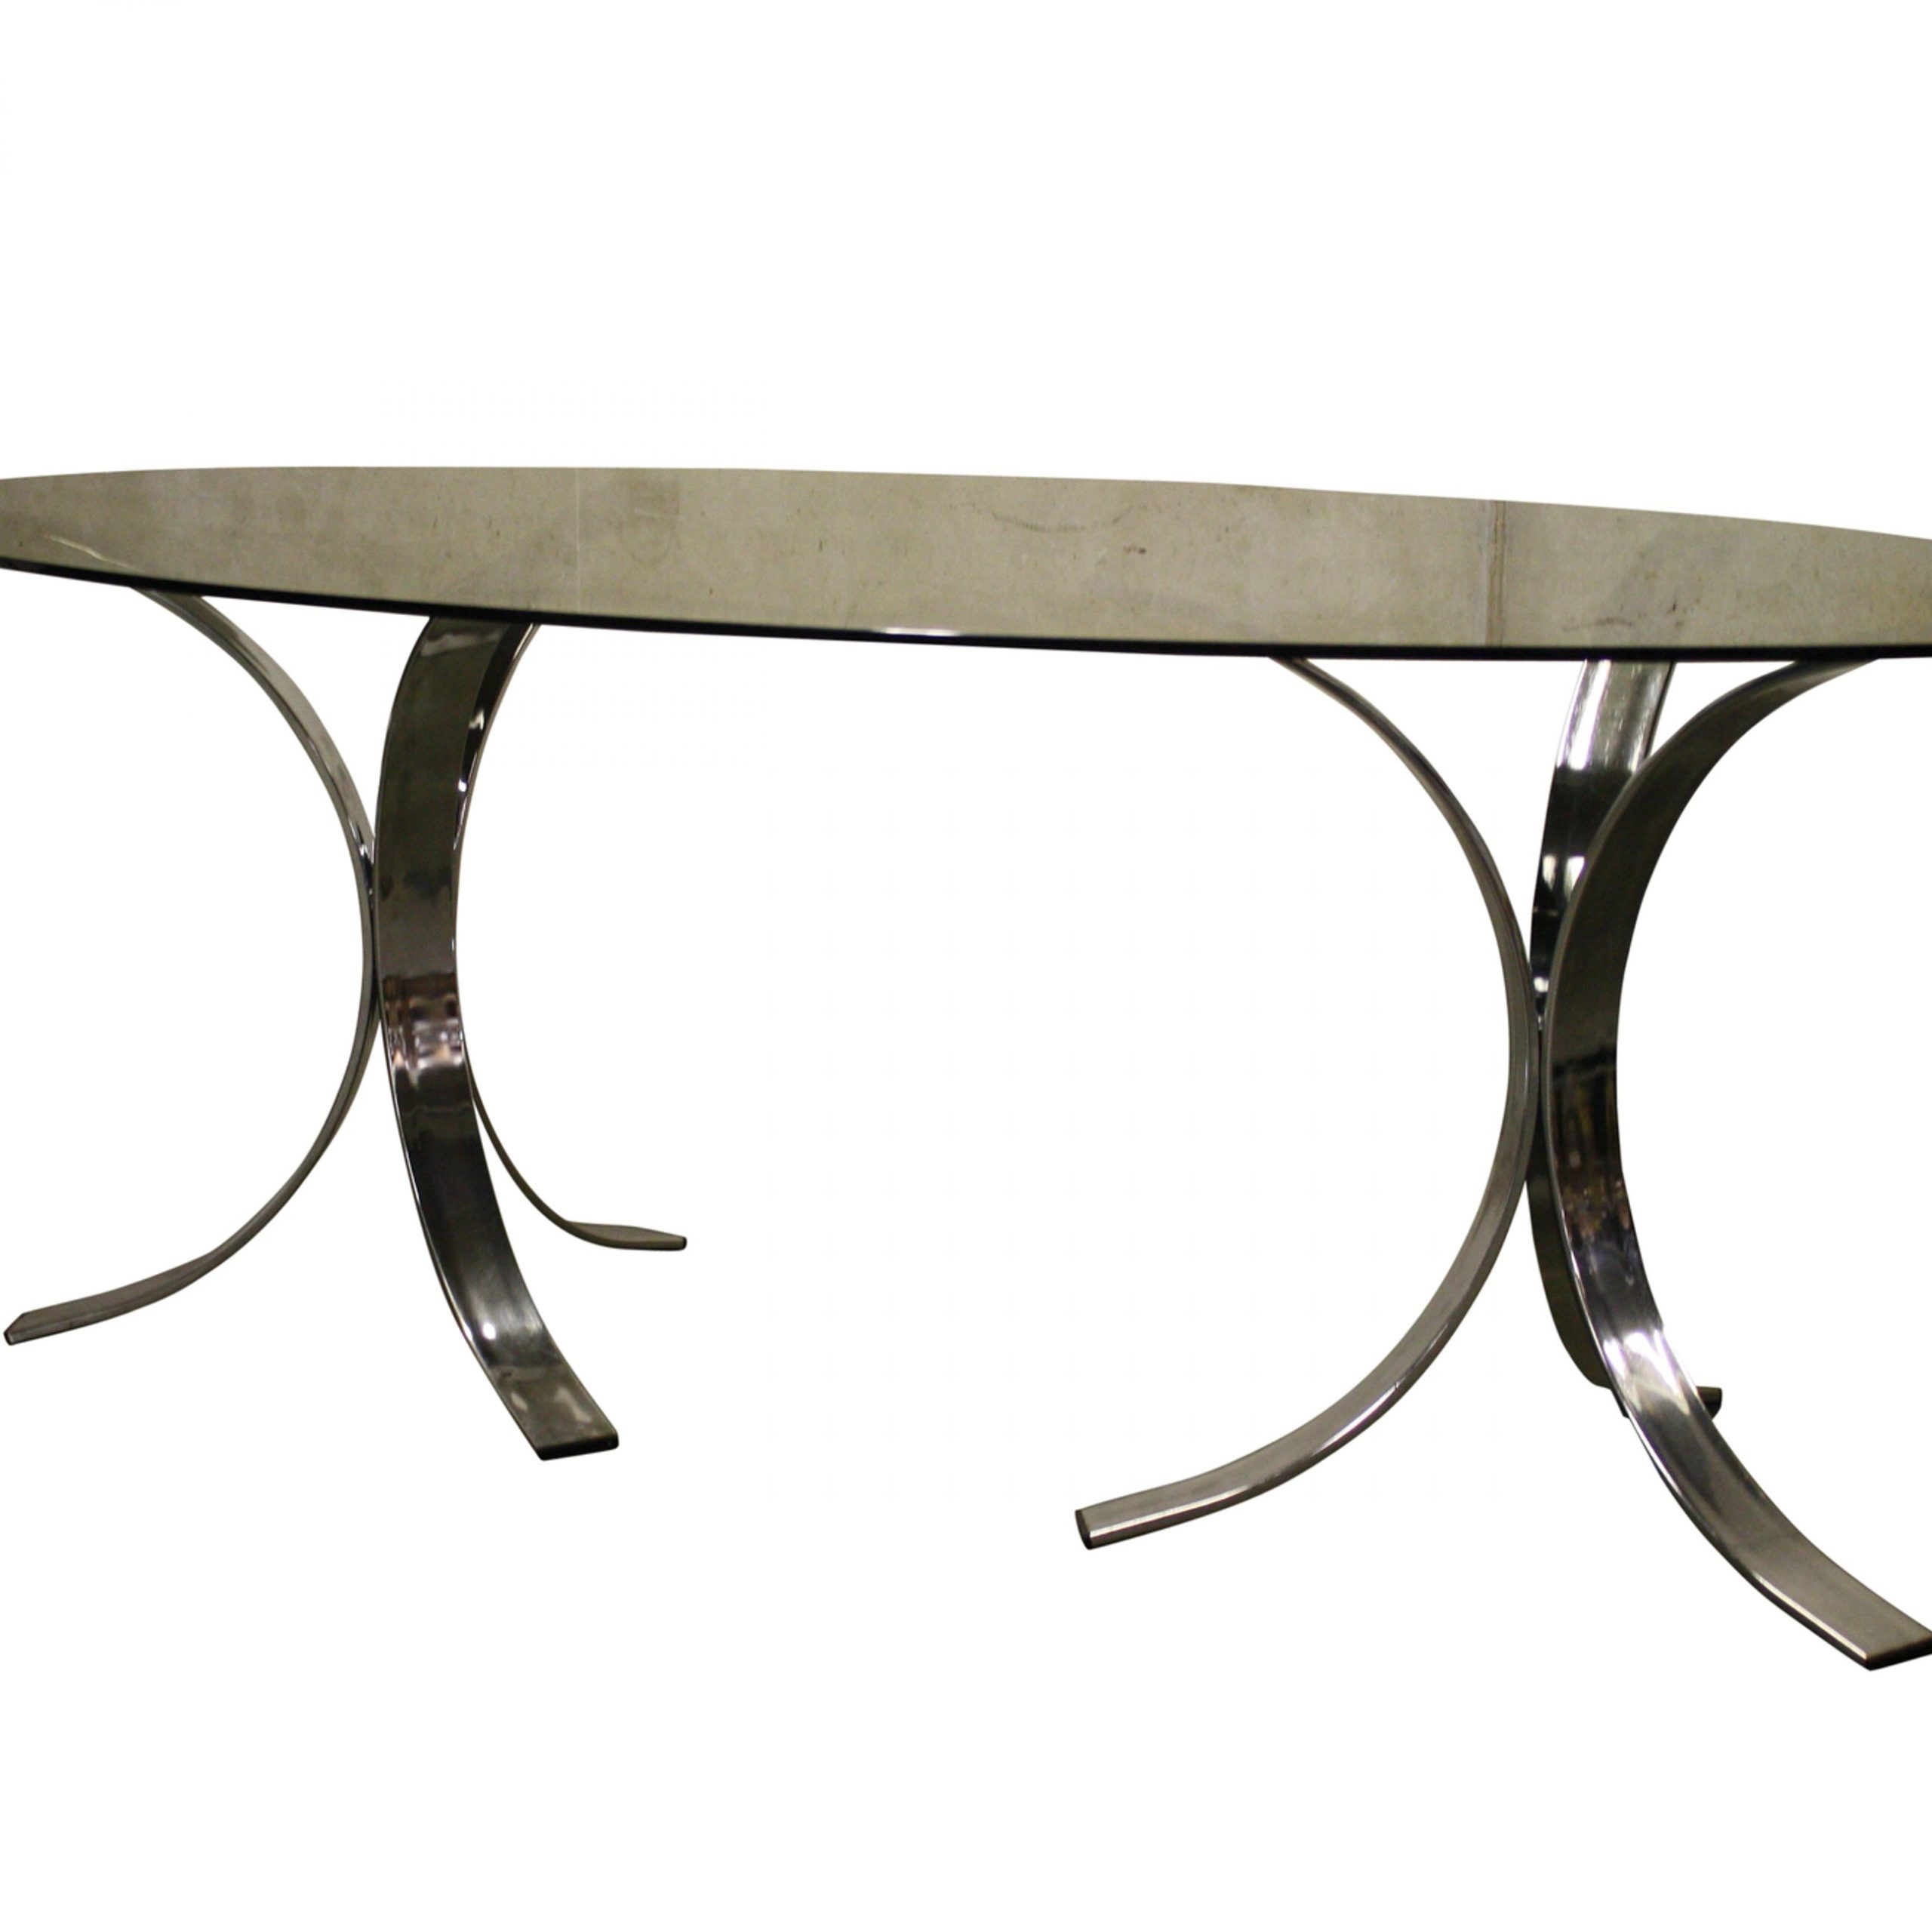 Trendy Smoked Oval Glasstop Dining Tables Inside Vintage Chrome Dining Table, 1970s (View 21 of 30)